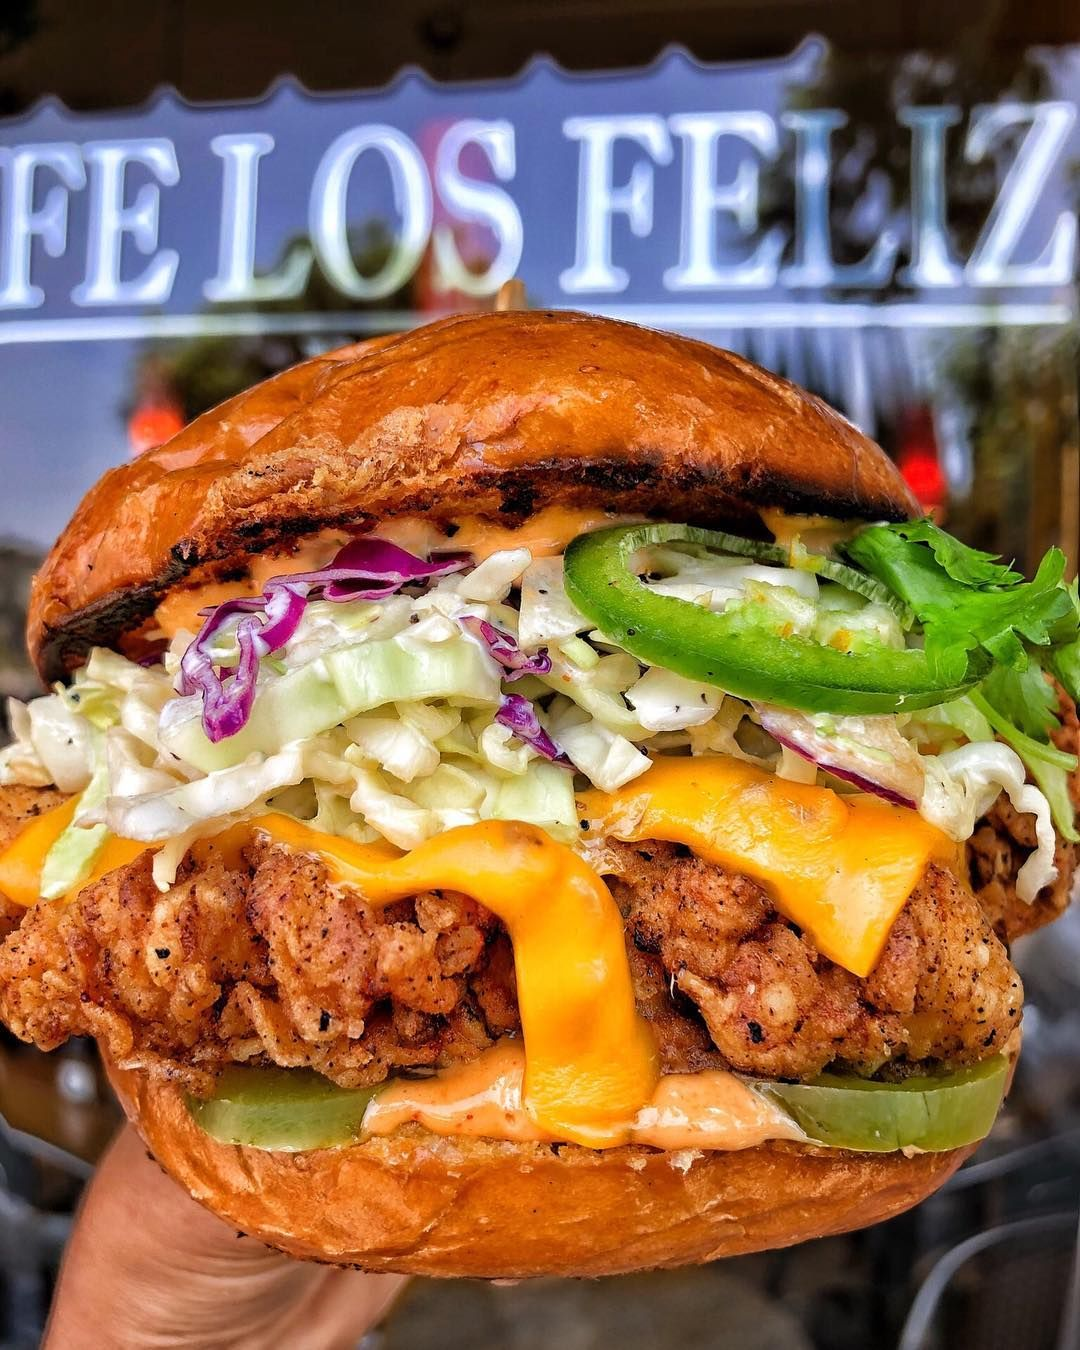 Crispy Chicken Sandwich From Cafe Losfeliz Buttermilk Fried Chicken Coleslaw Home Made Chipotle Sauce Cheese Jalapenos P Baked Dinner Recipes Food Goals Food